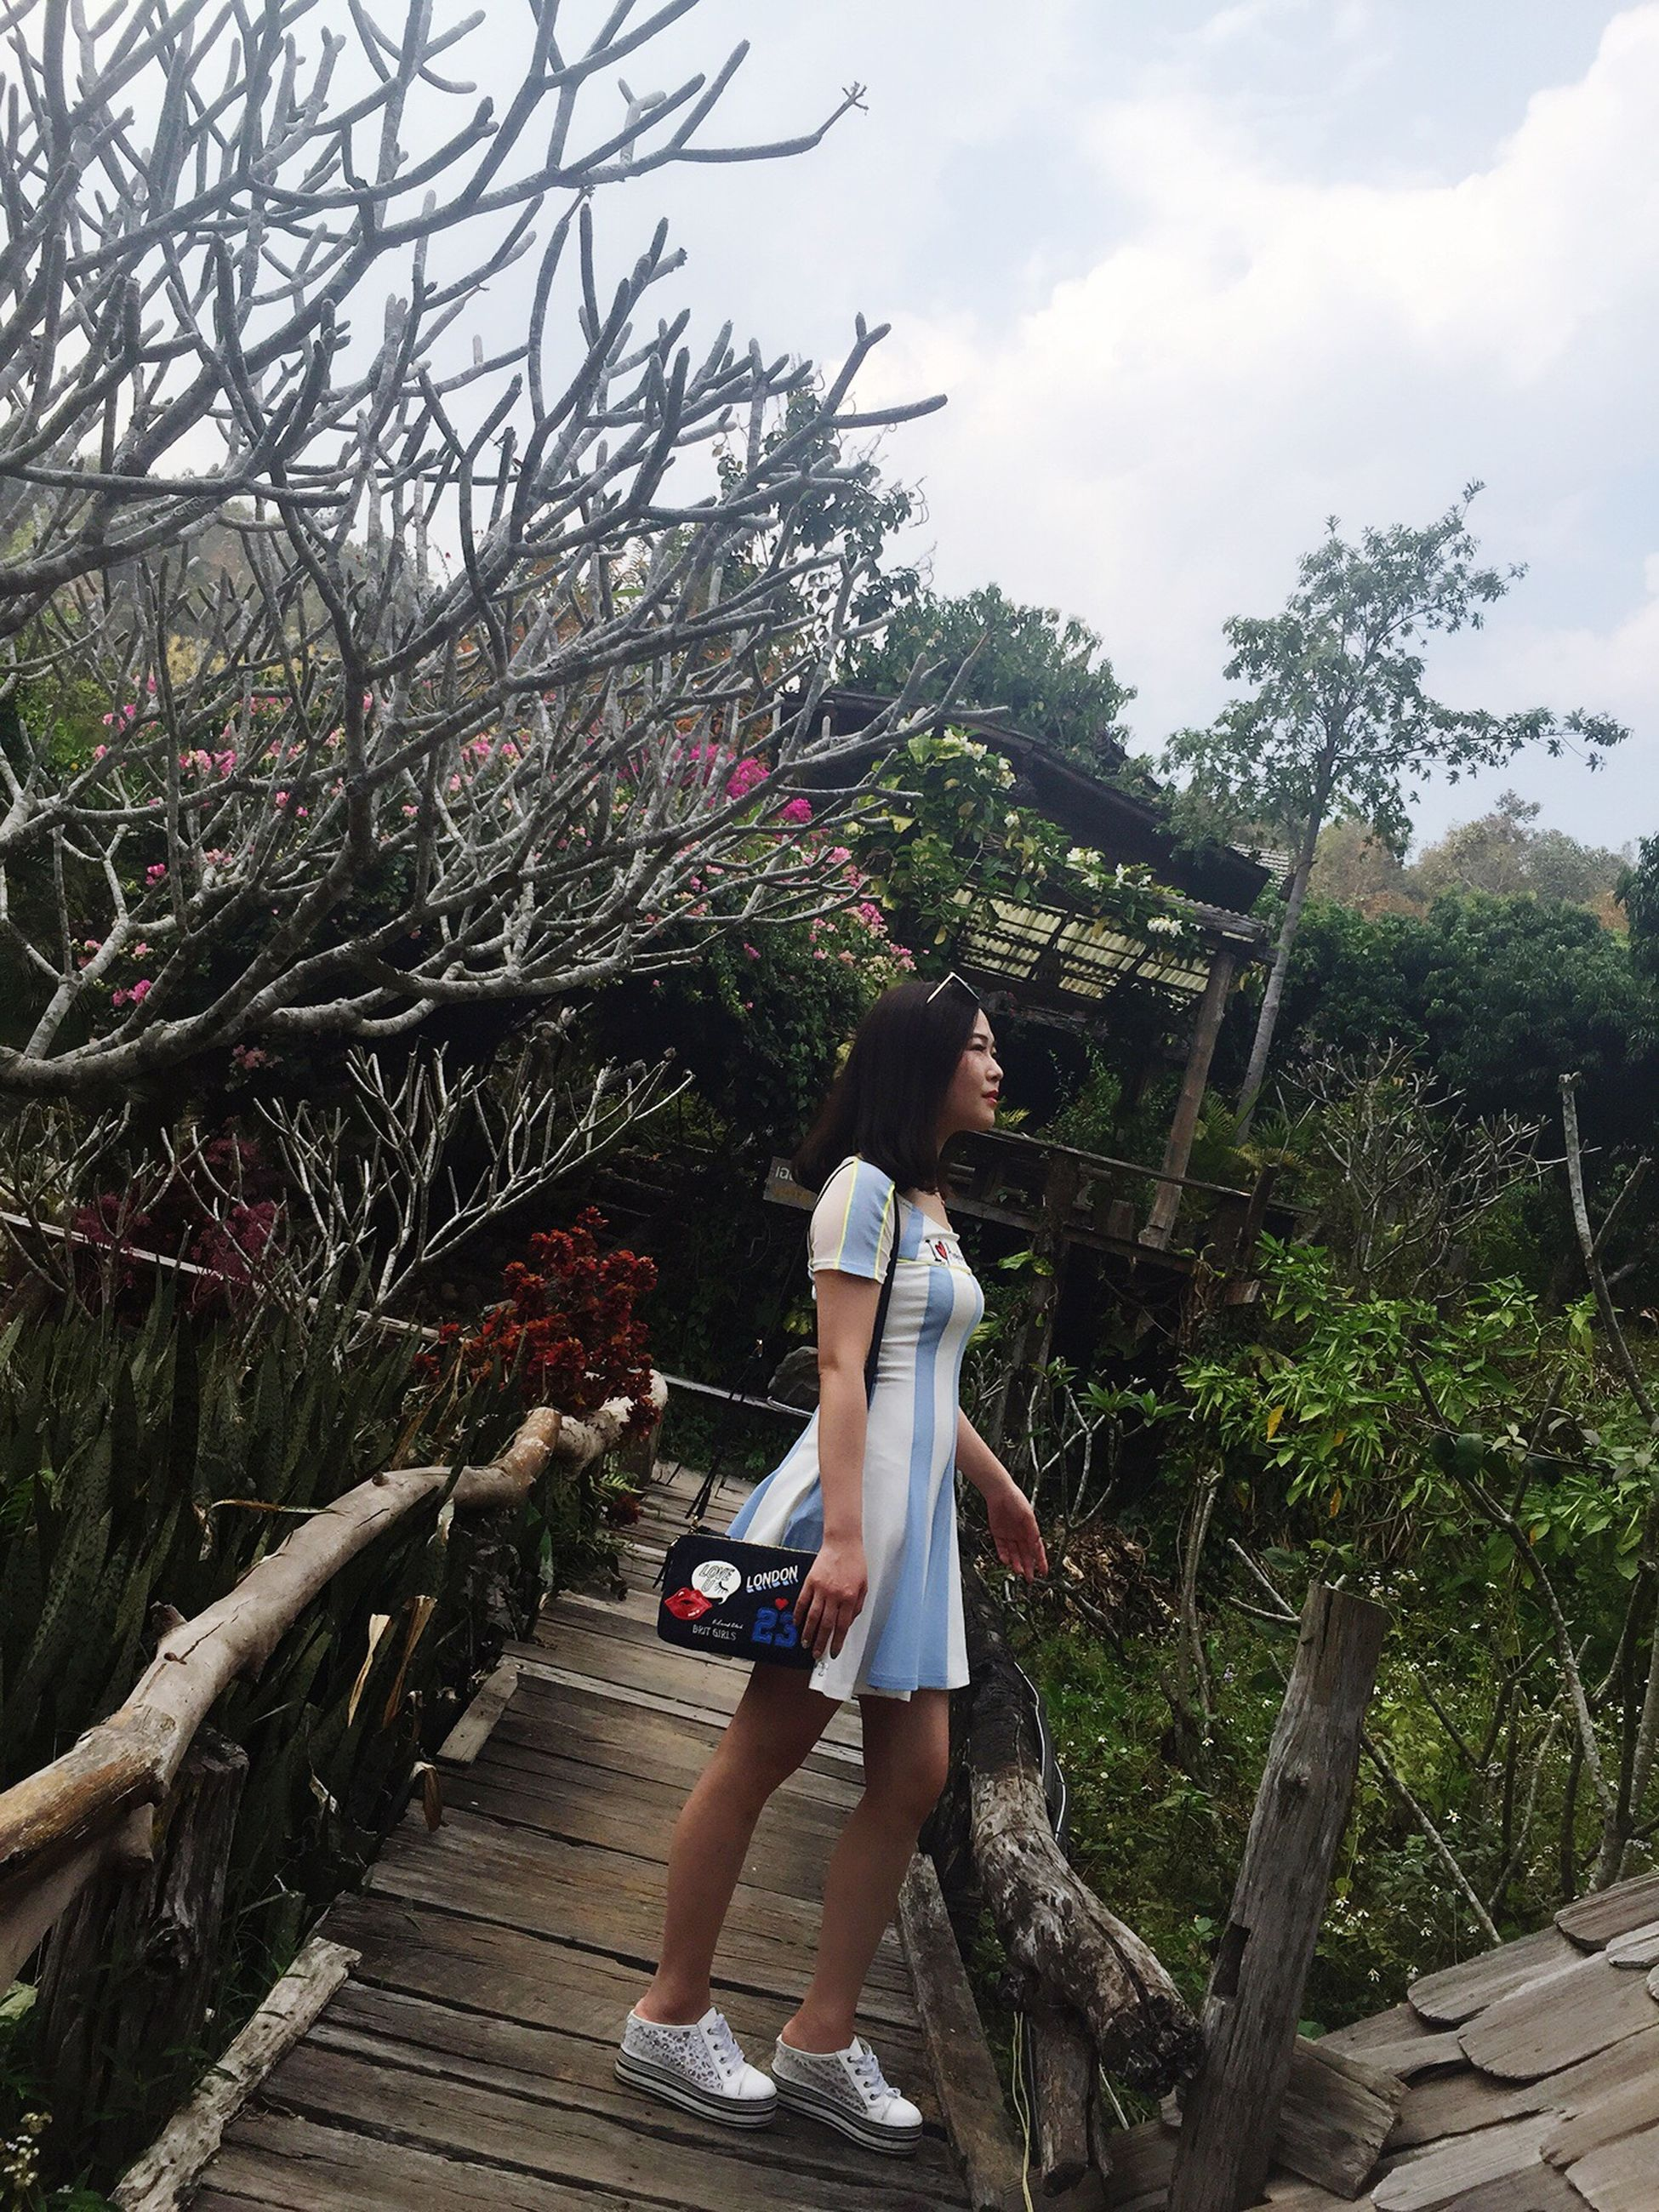 lifestyles, full length, tree, casual clothing, leisure activity, young women, young adult, person, rear view, sky, standing, growth, flower, childhood, walking, girls, plant